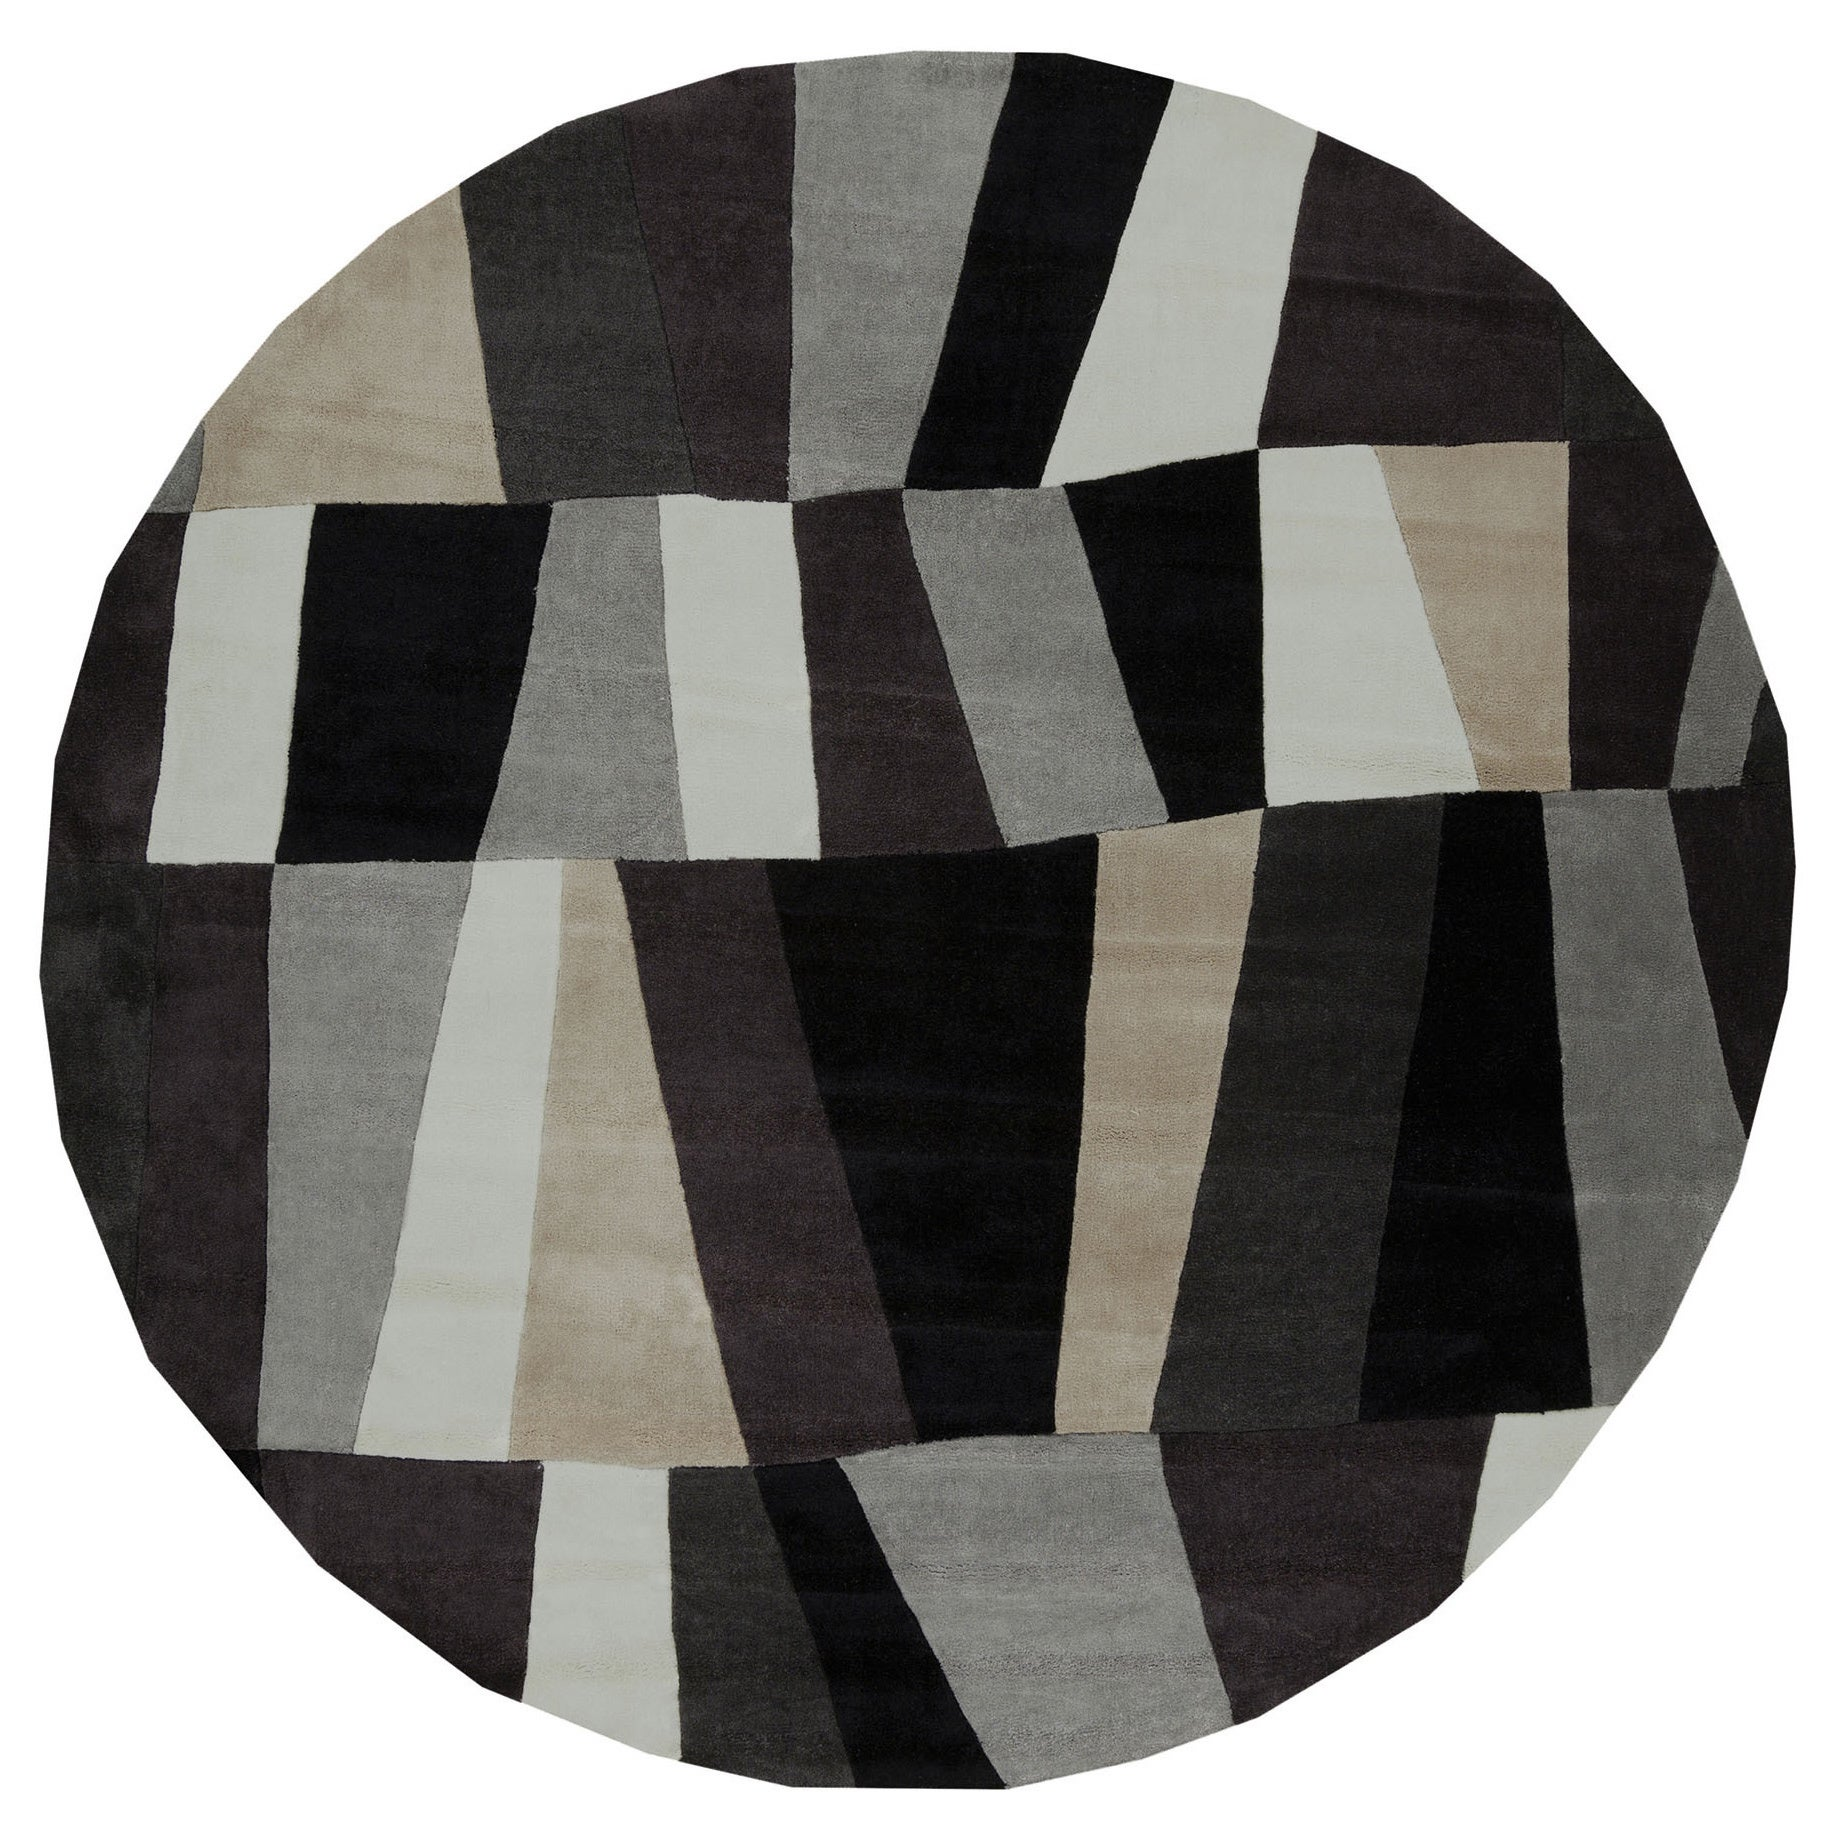 Hand Tufted Geometric Contemporary Round Area Rug (8u0027 Round)   Free  Shipping Today   Overstock.com   16247512